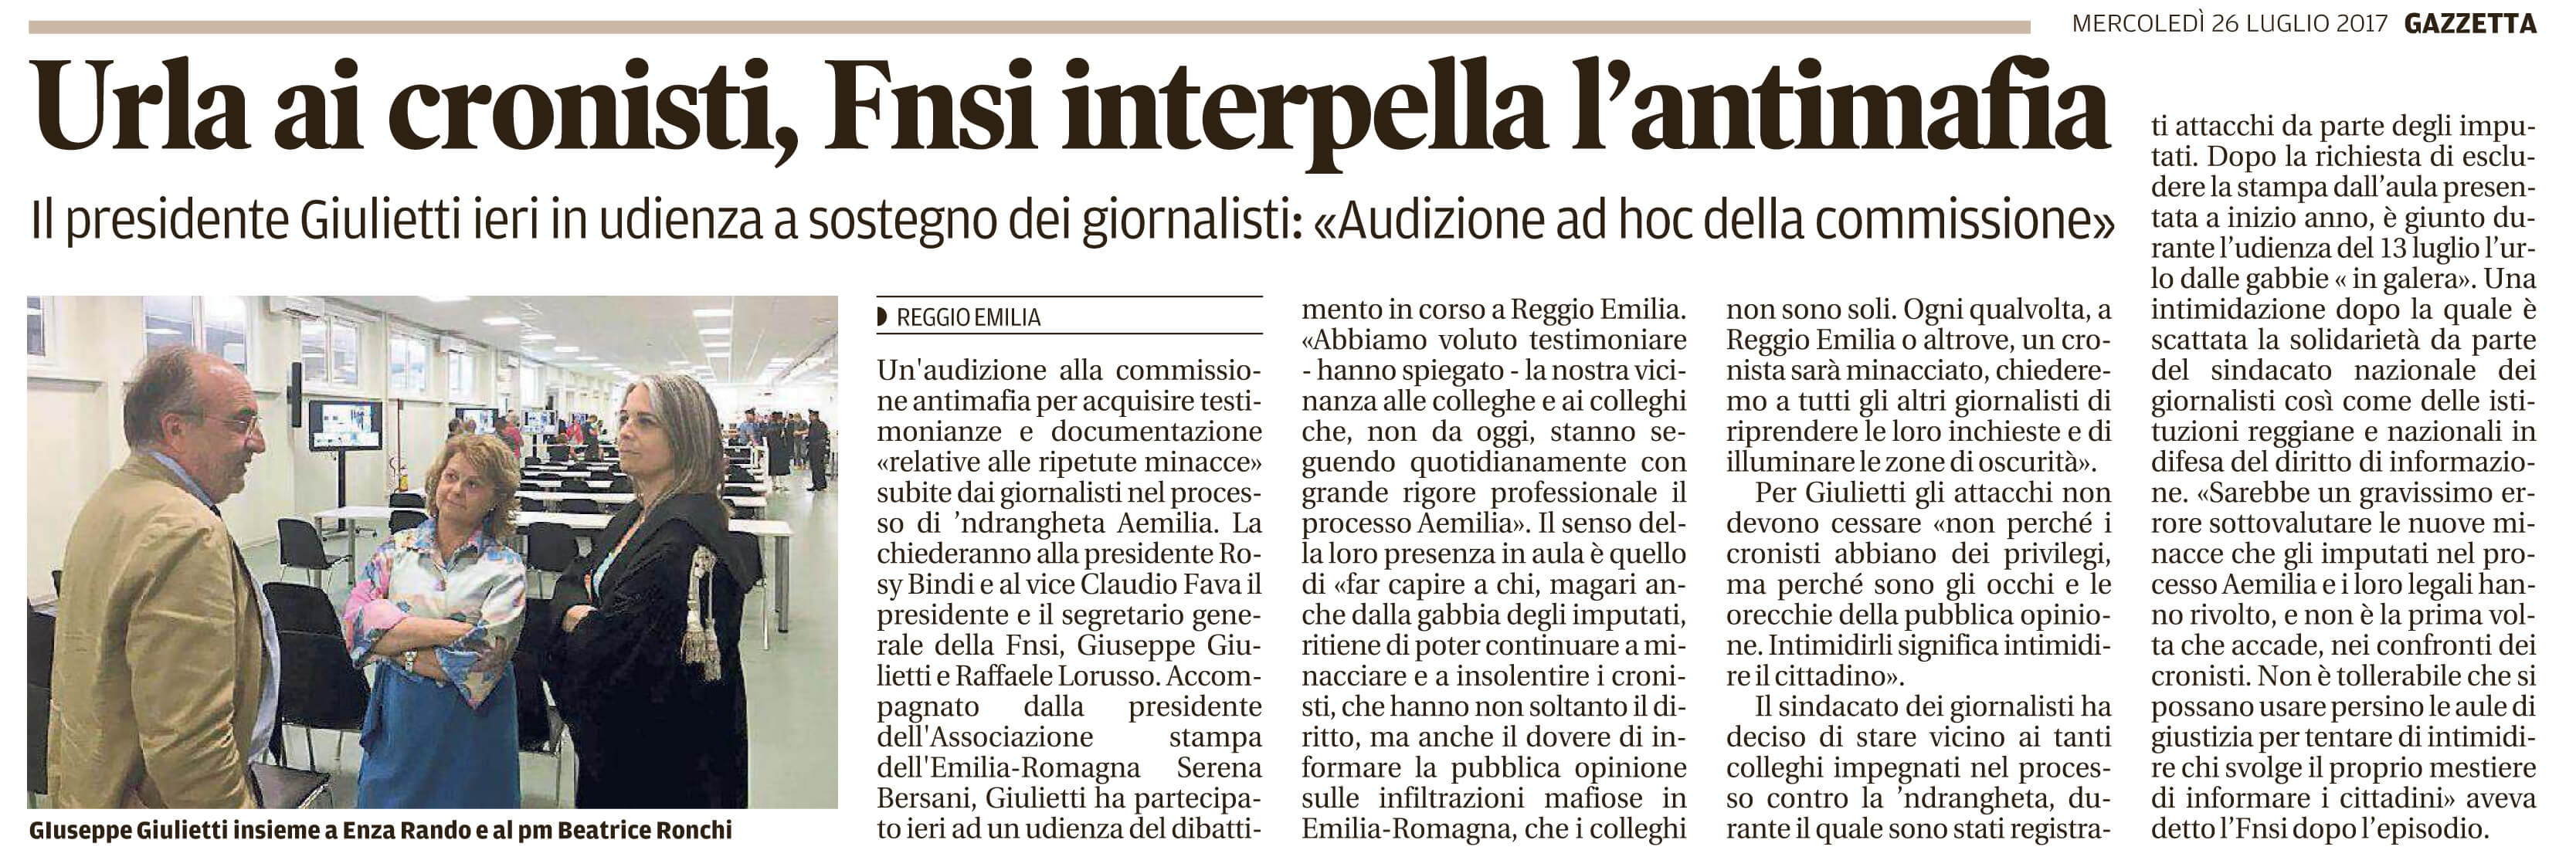 Fnsi interpella l'antimafia